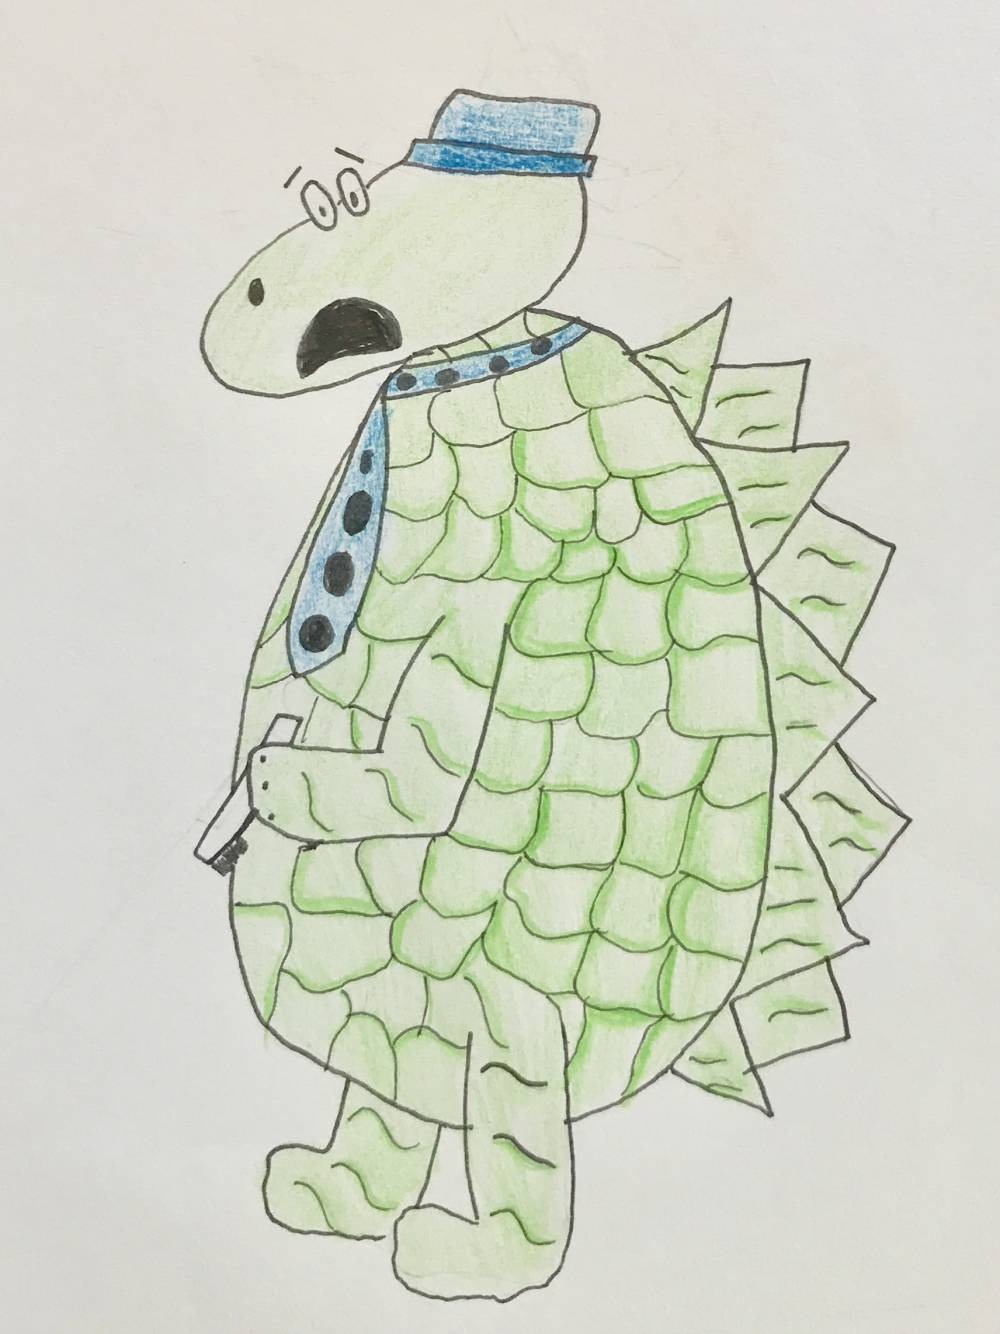 Dinosaur drawing by Andrea. Part of a very early idea for a children's book.